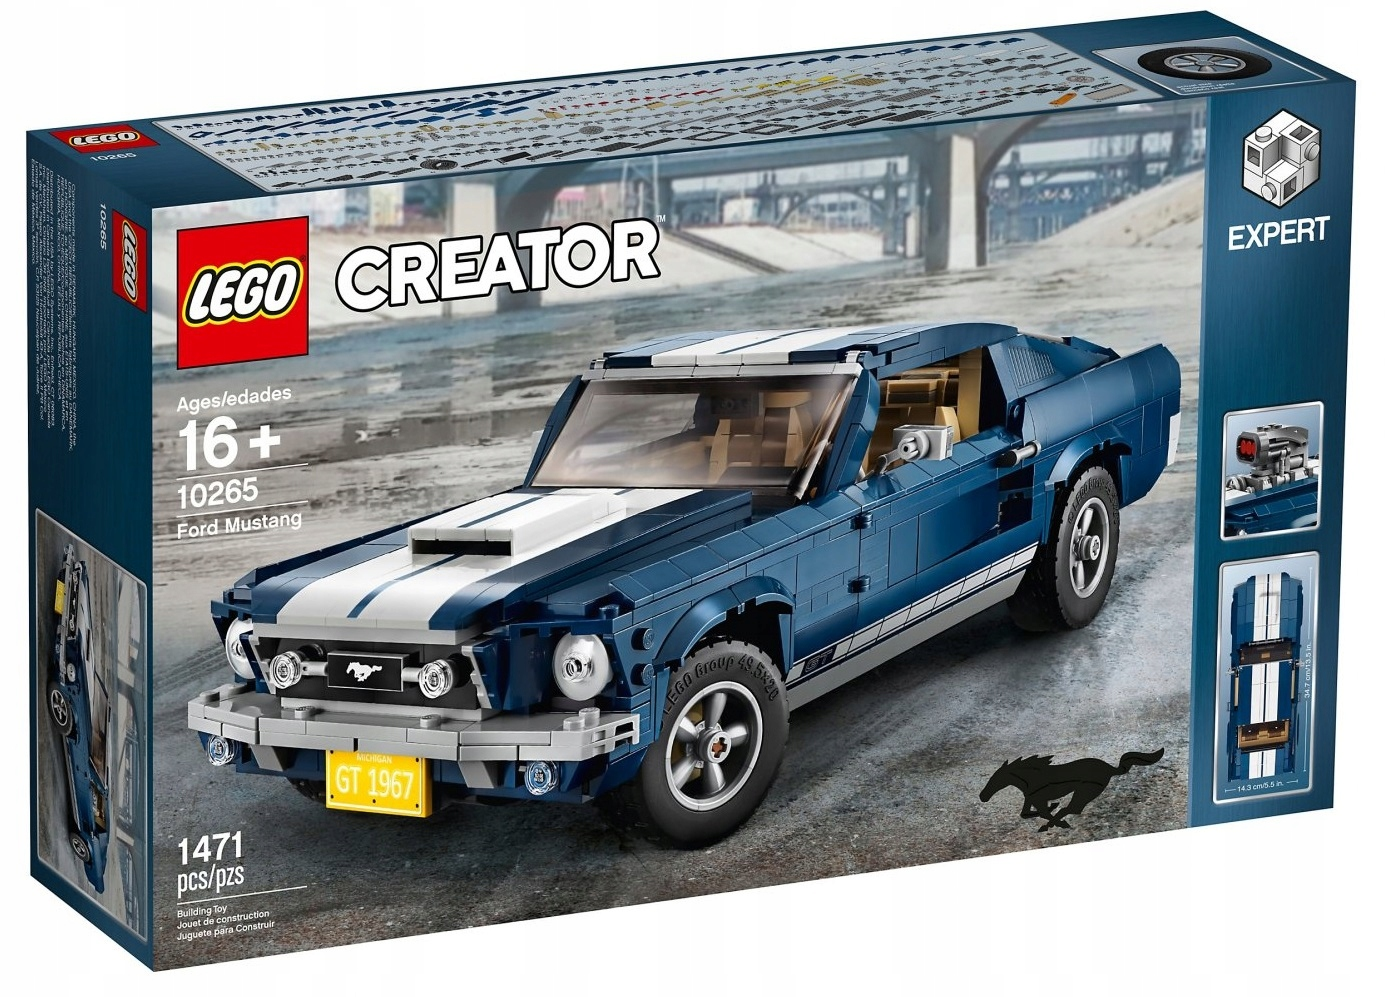 LEGO CREATOR Ford Mustang 10265